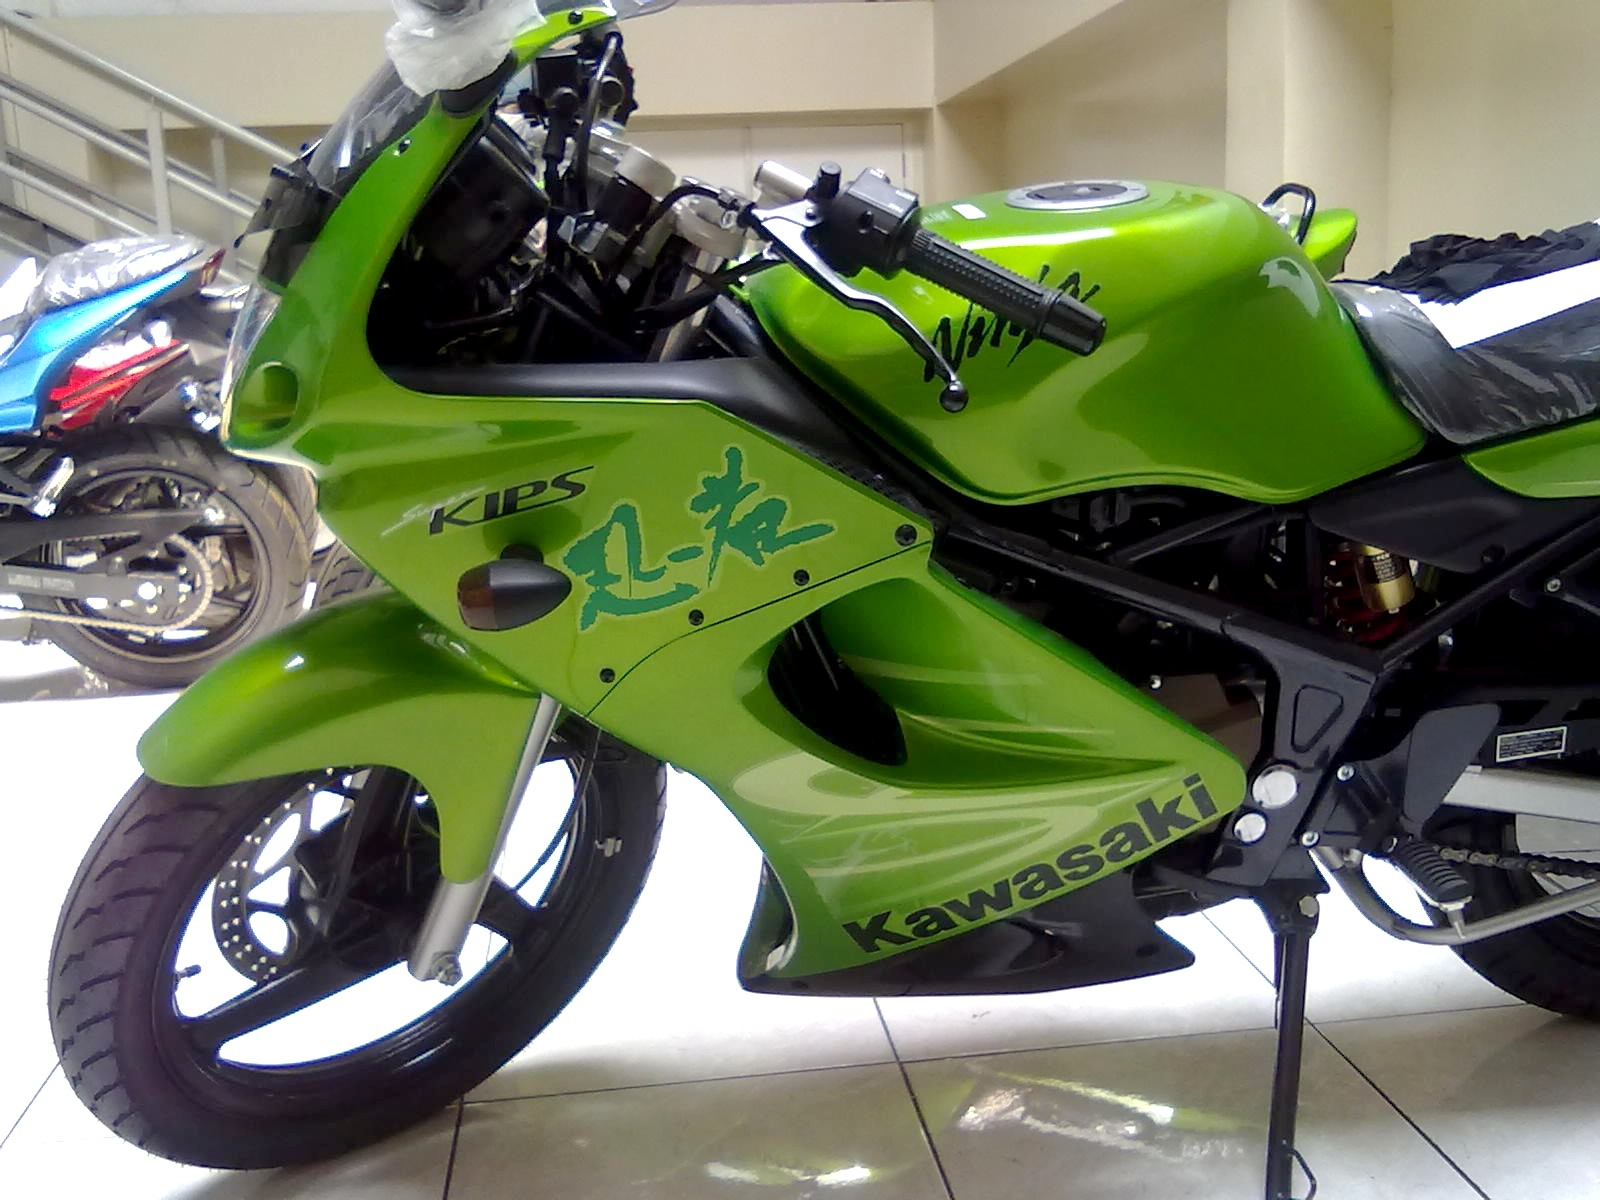 Kawasaki Ninja 150 Rr price in India as on Jul 22, 2014